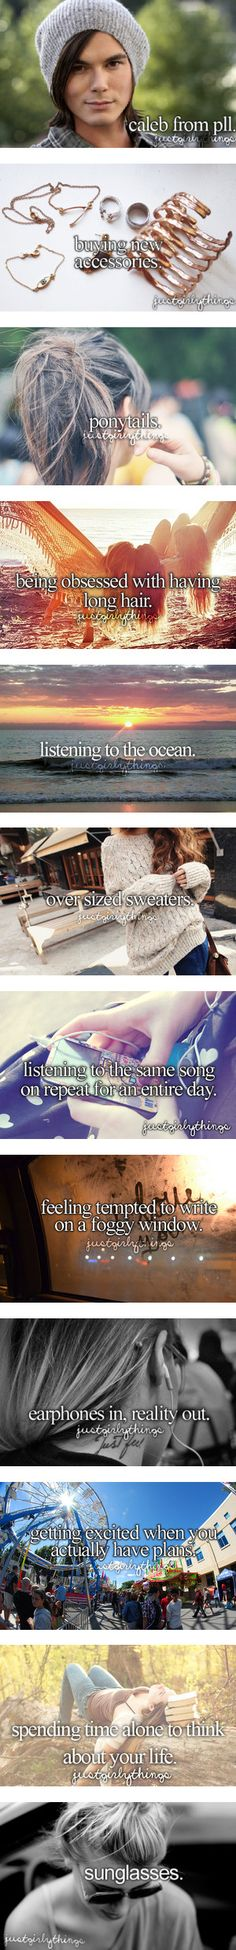 """""""Just Girly Things3"""" by silentlypassionate ❤ liked on Polyvore"""